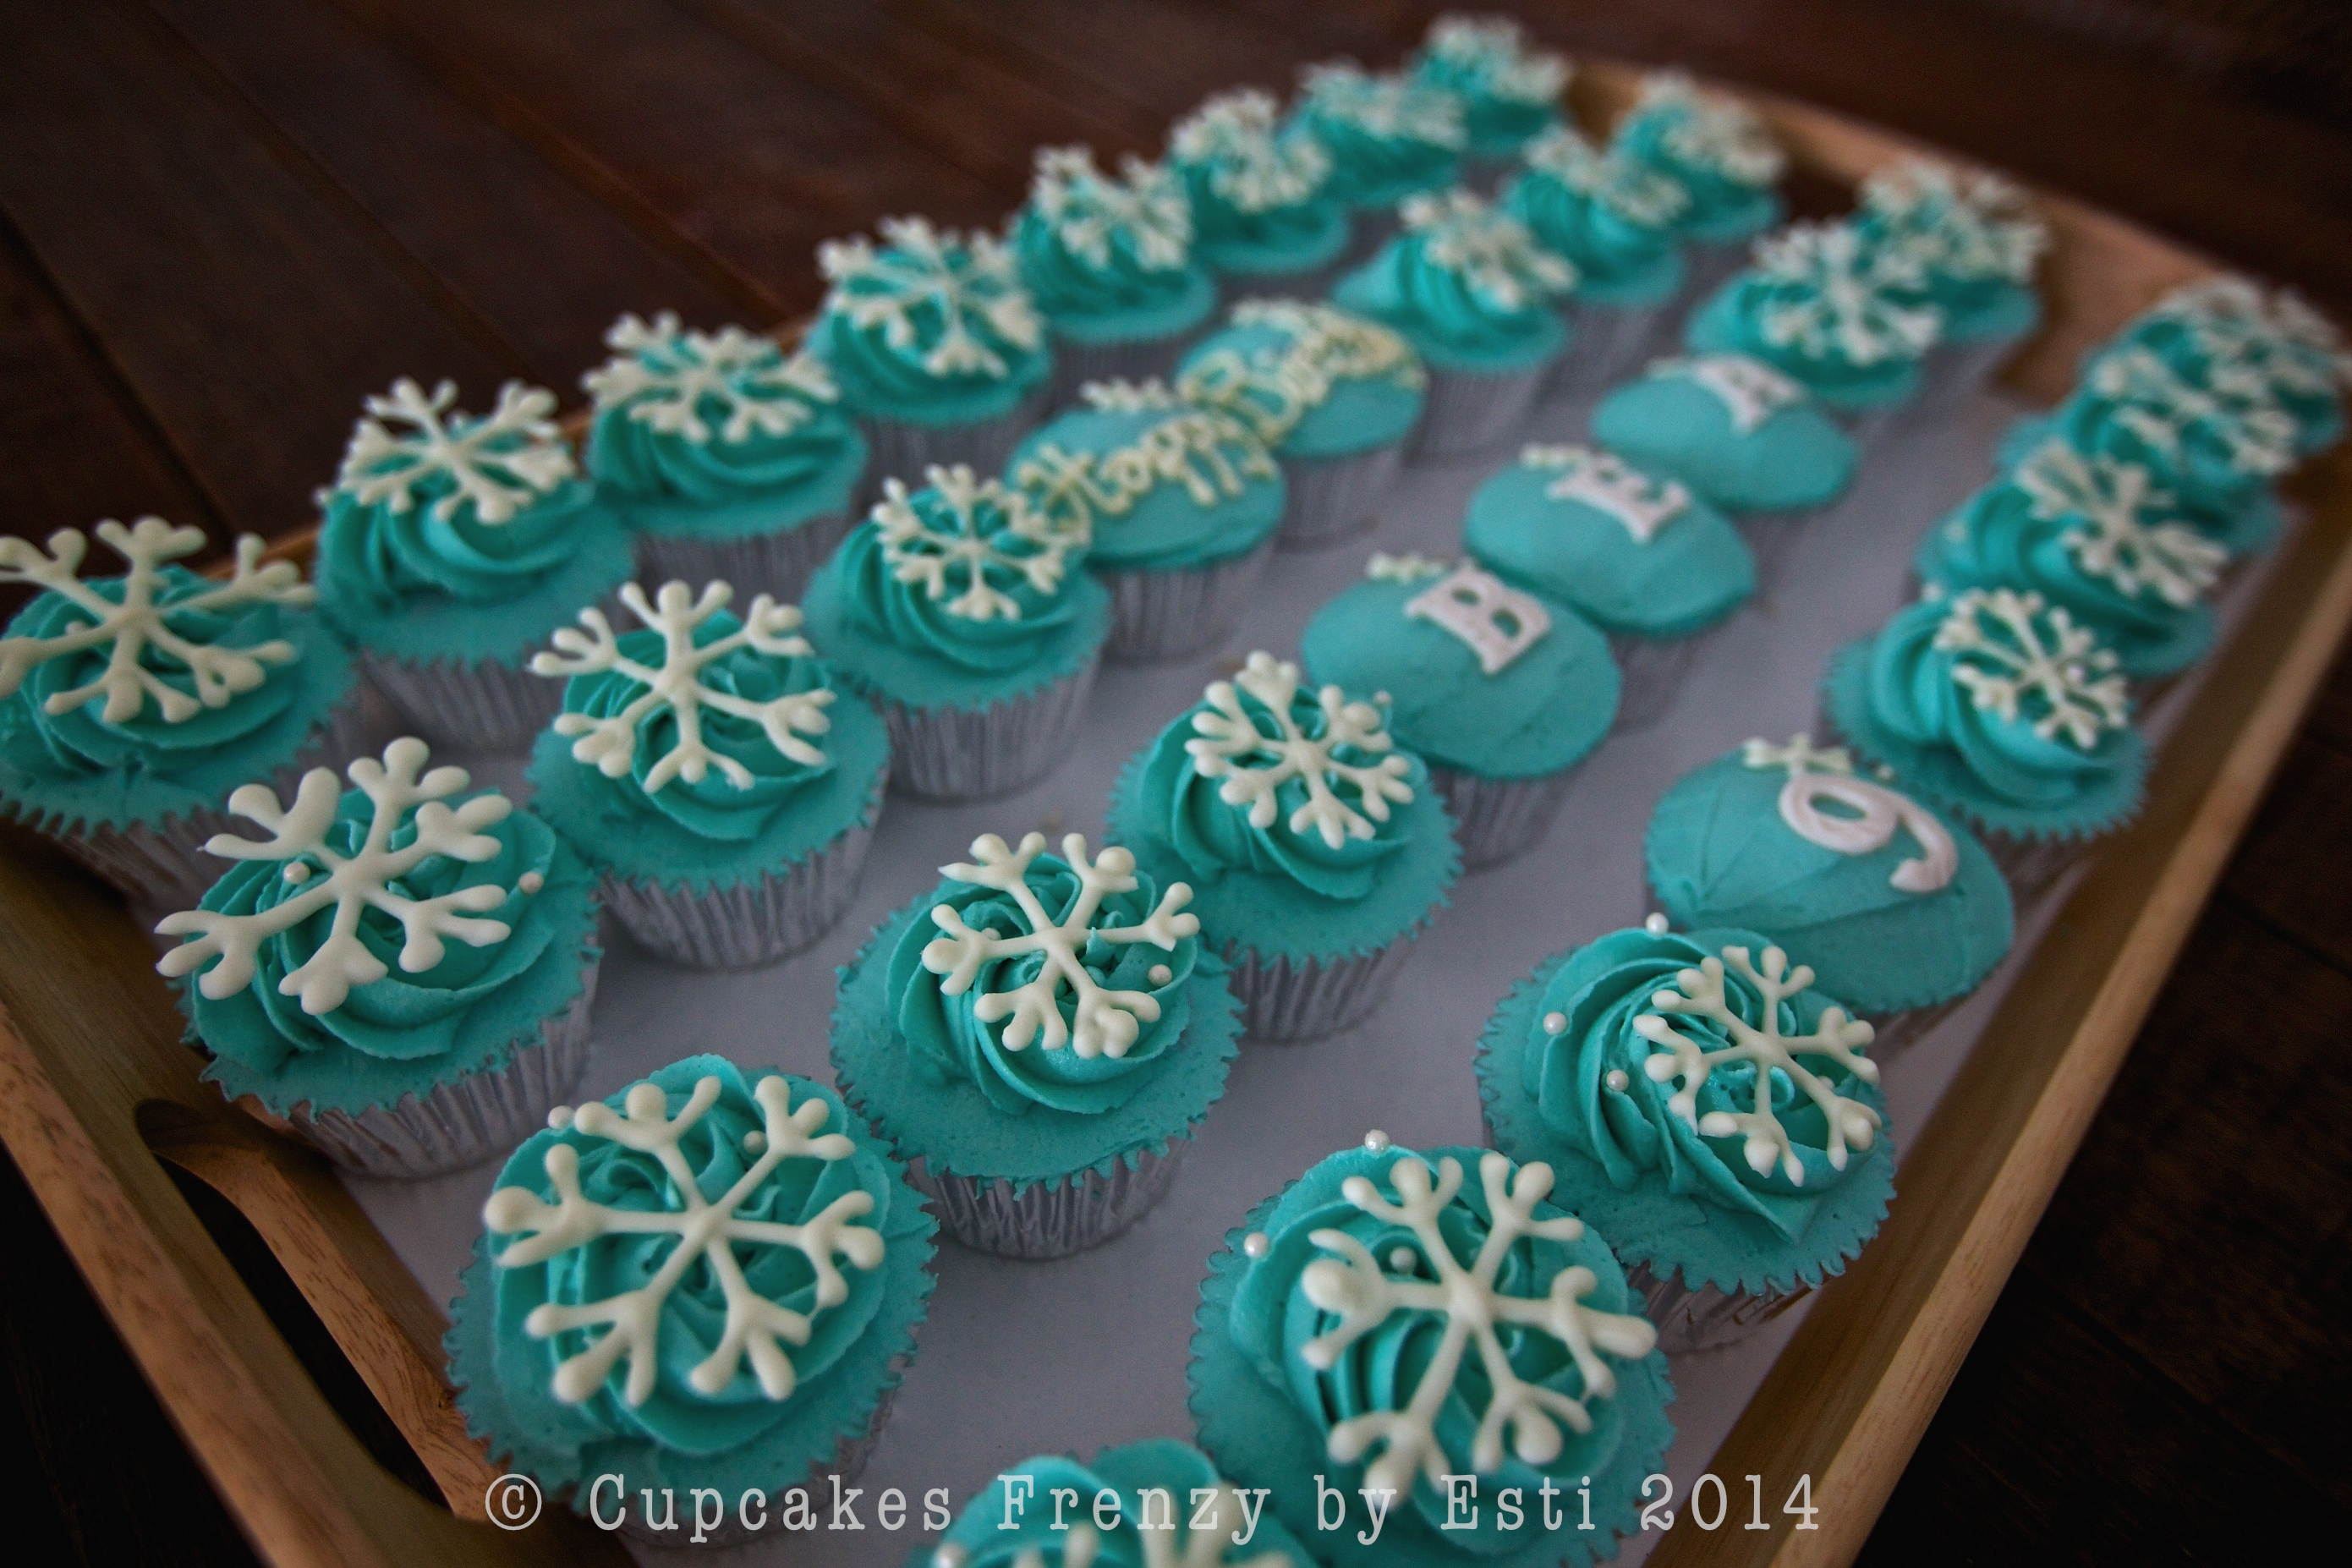 Ice Skating Party Cupcakes Frenzy